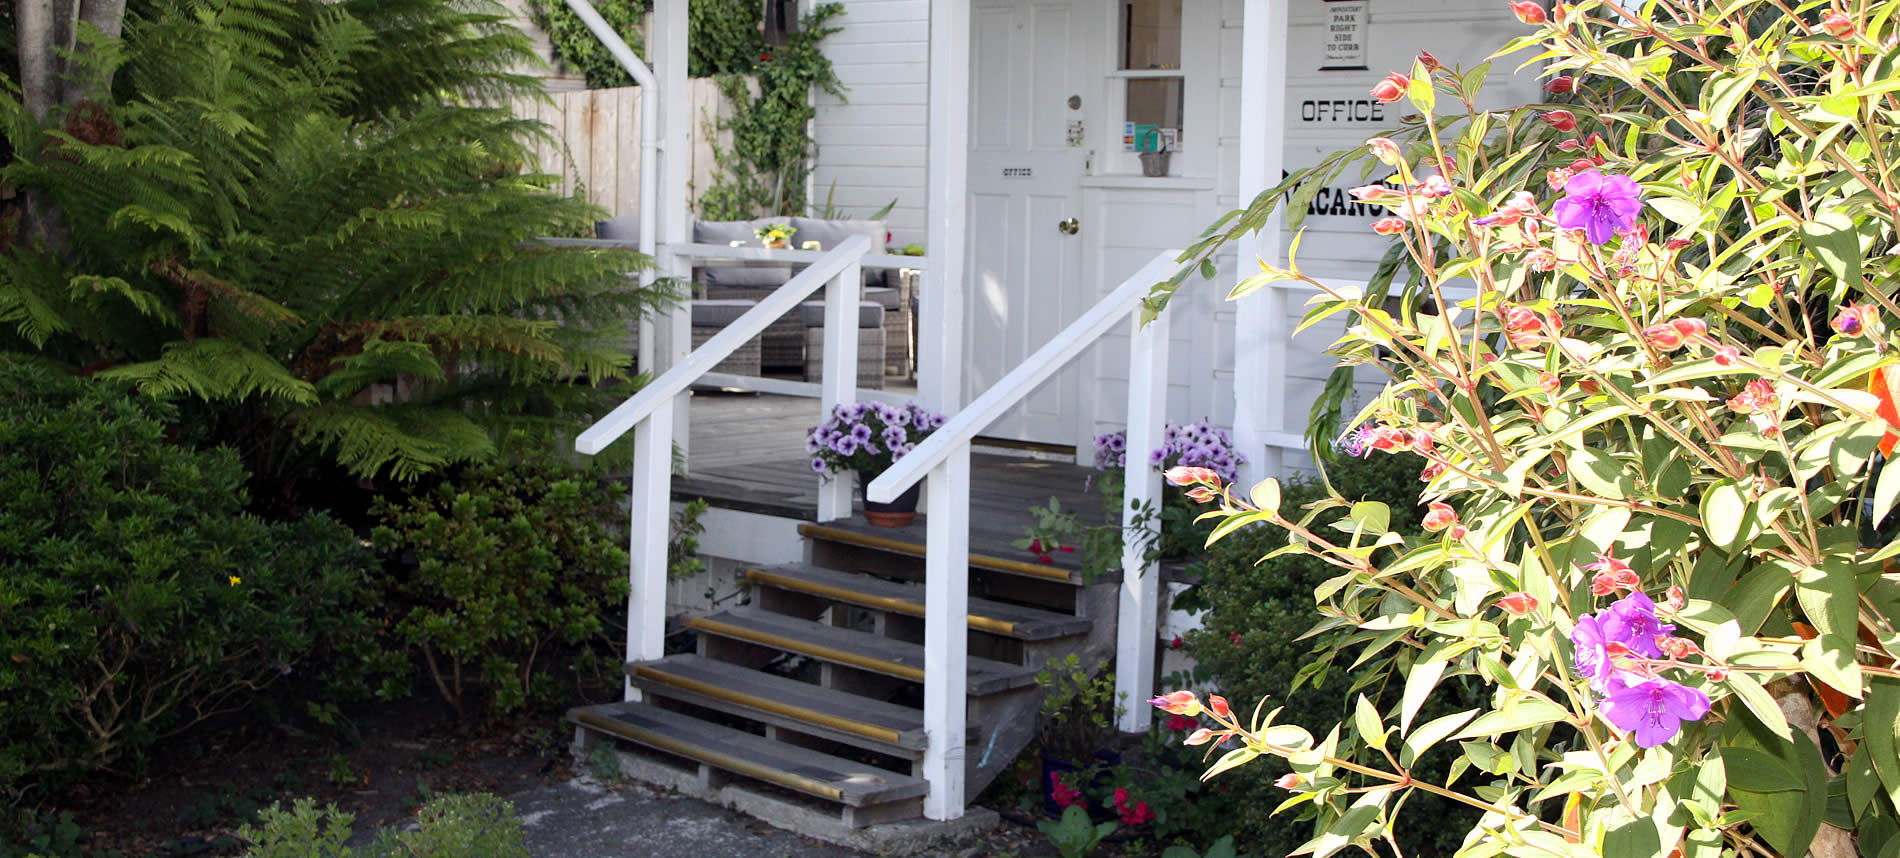 seagull inn mendocino bed and breakfast steps to front door